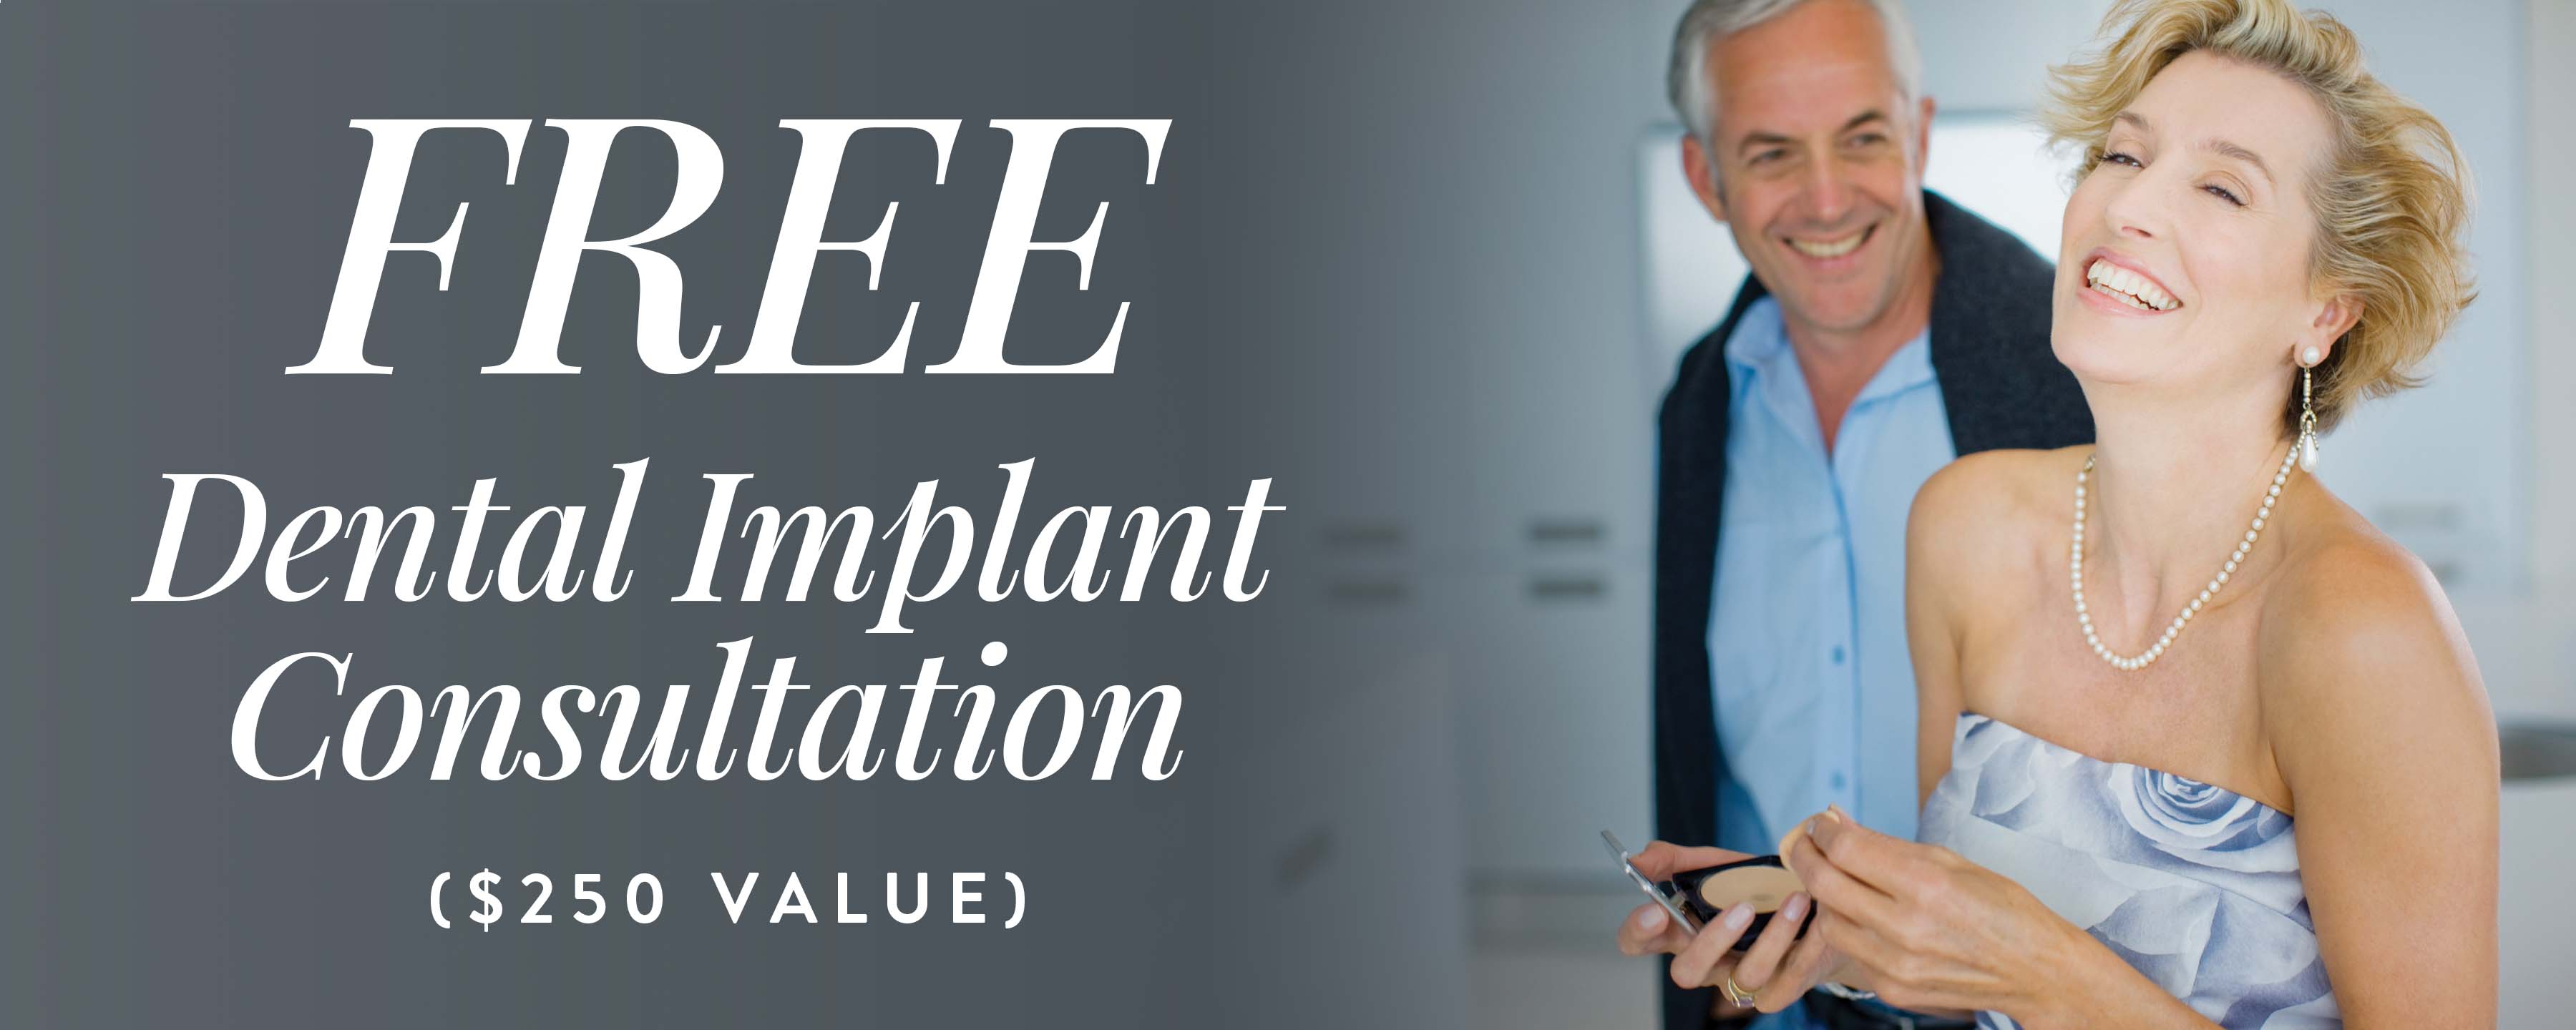 Free Dental Implant Consultation ($250 Value)*